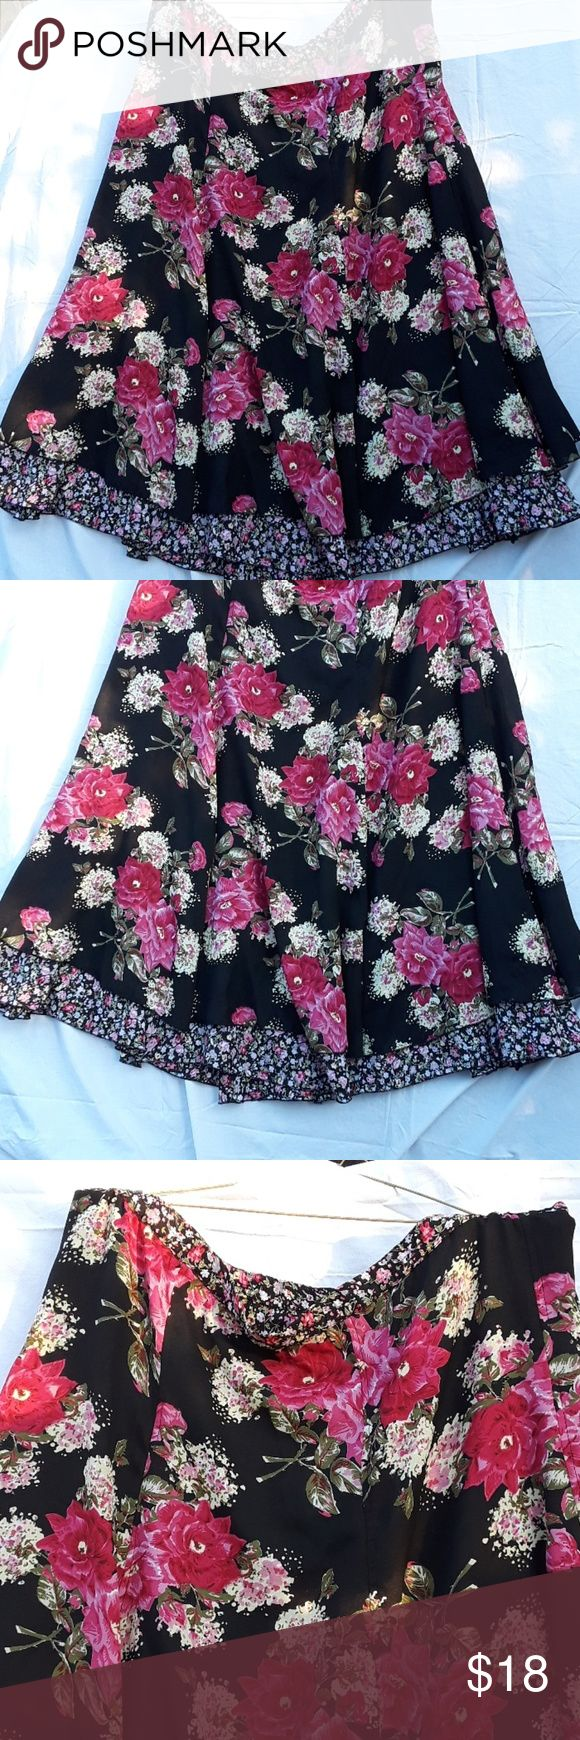 PLUS SIZE WOMEN SKIRT Women floral SKIRT multi function can wear and both sides 3x very cute lengths 37 ins waist circumference IS  44 ins . Skirts Circle & Skater